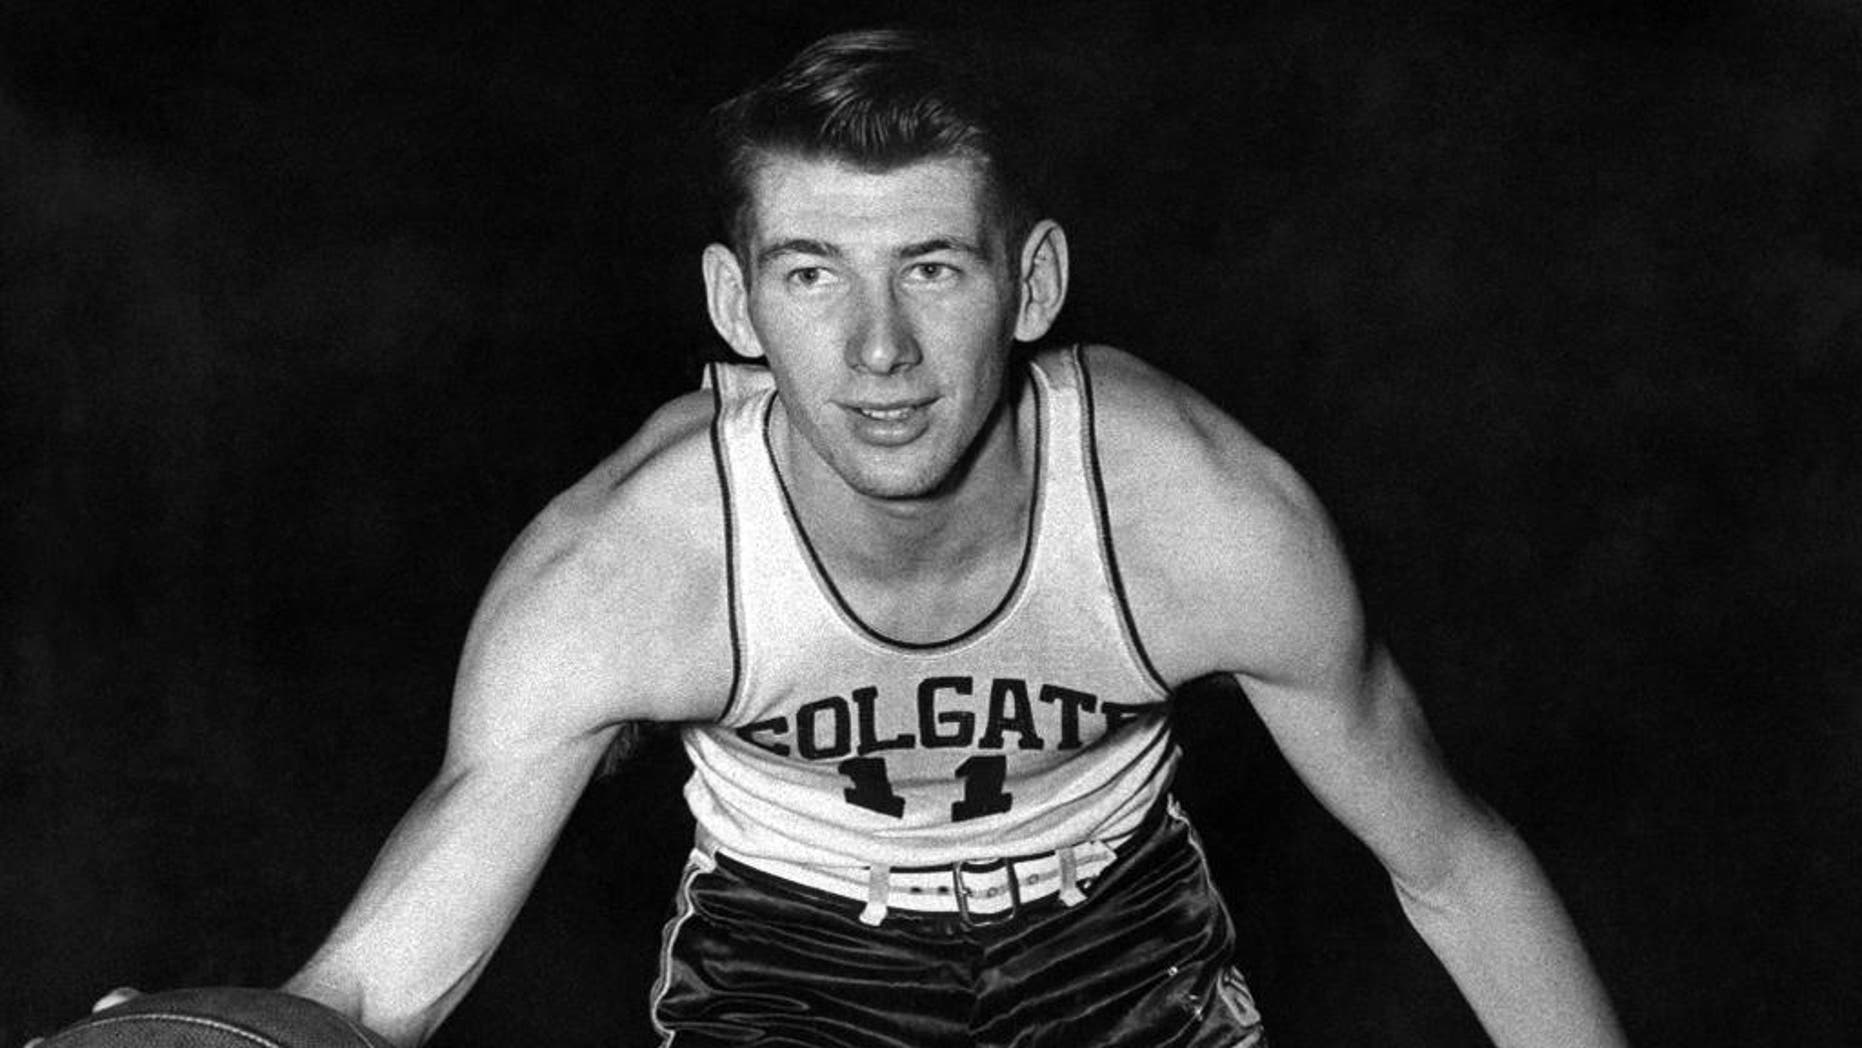 FILE - In this April 1, 1947, file photo provided by Madison Square Garden, Colgate basketball player Ernie Vandeweghe poses in uniform. Vandeweghe, the former Colgate and New York Knicks player and father of former NBA star Kiki Vandeweghe and pro tennis player CoCo Vandeweghe, has died. He was 86. The death was confirmed Sunday, Nov. 9, 2014, by the NBA through its NBA history Twitter feed and by granddaughter CoCo Vandeweghe in a Facebook post. (AP Photo/Madison Square Garden, File)